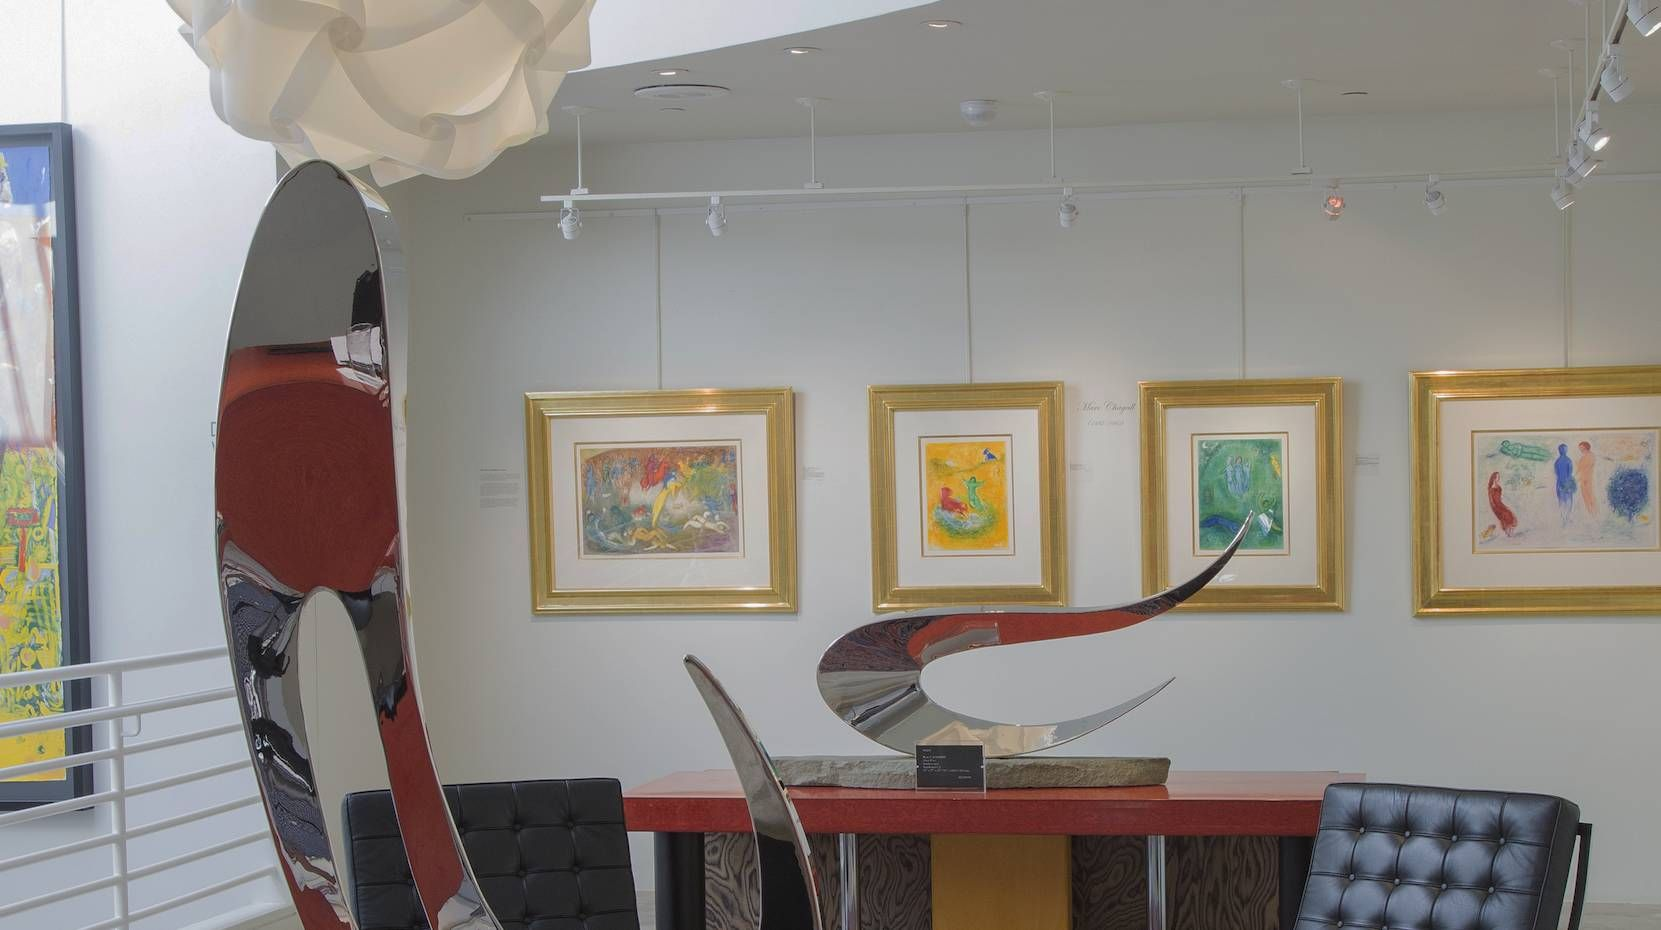 Galerie michael is one of the most highly regarded fine art galleries in the world